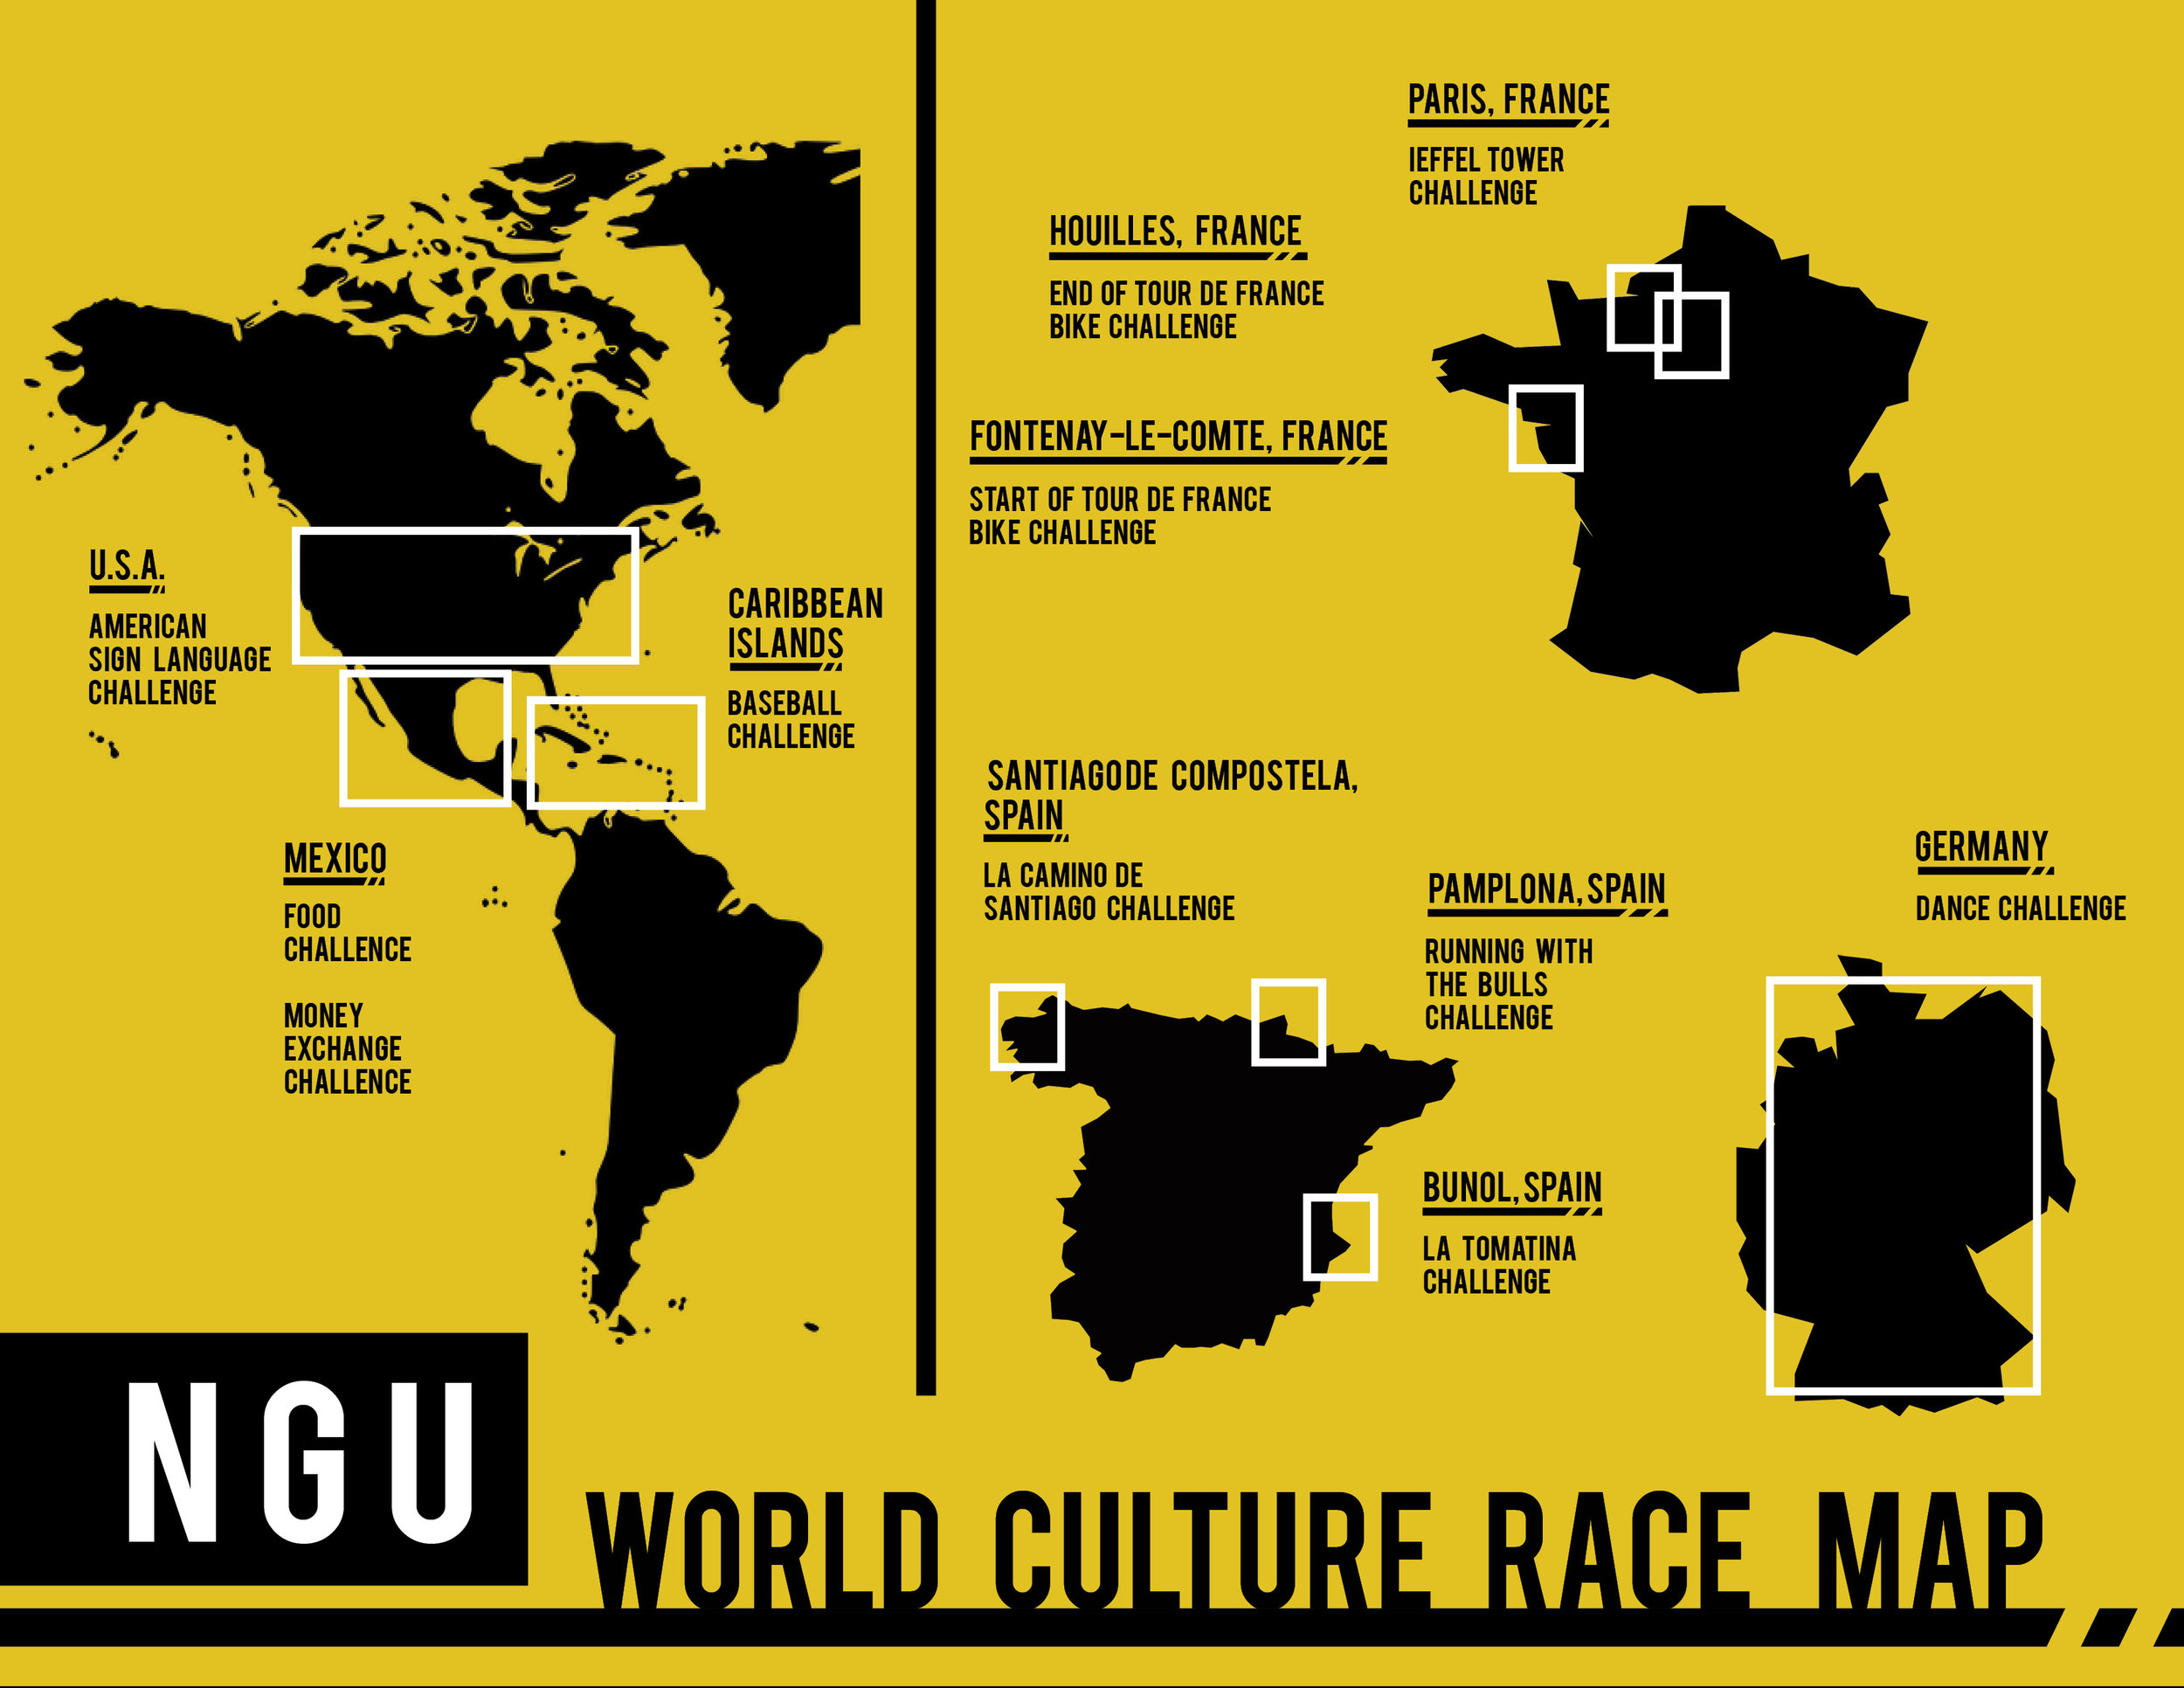 Map depicting where the events take place from the World Culture Race.